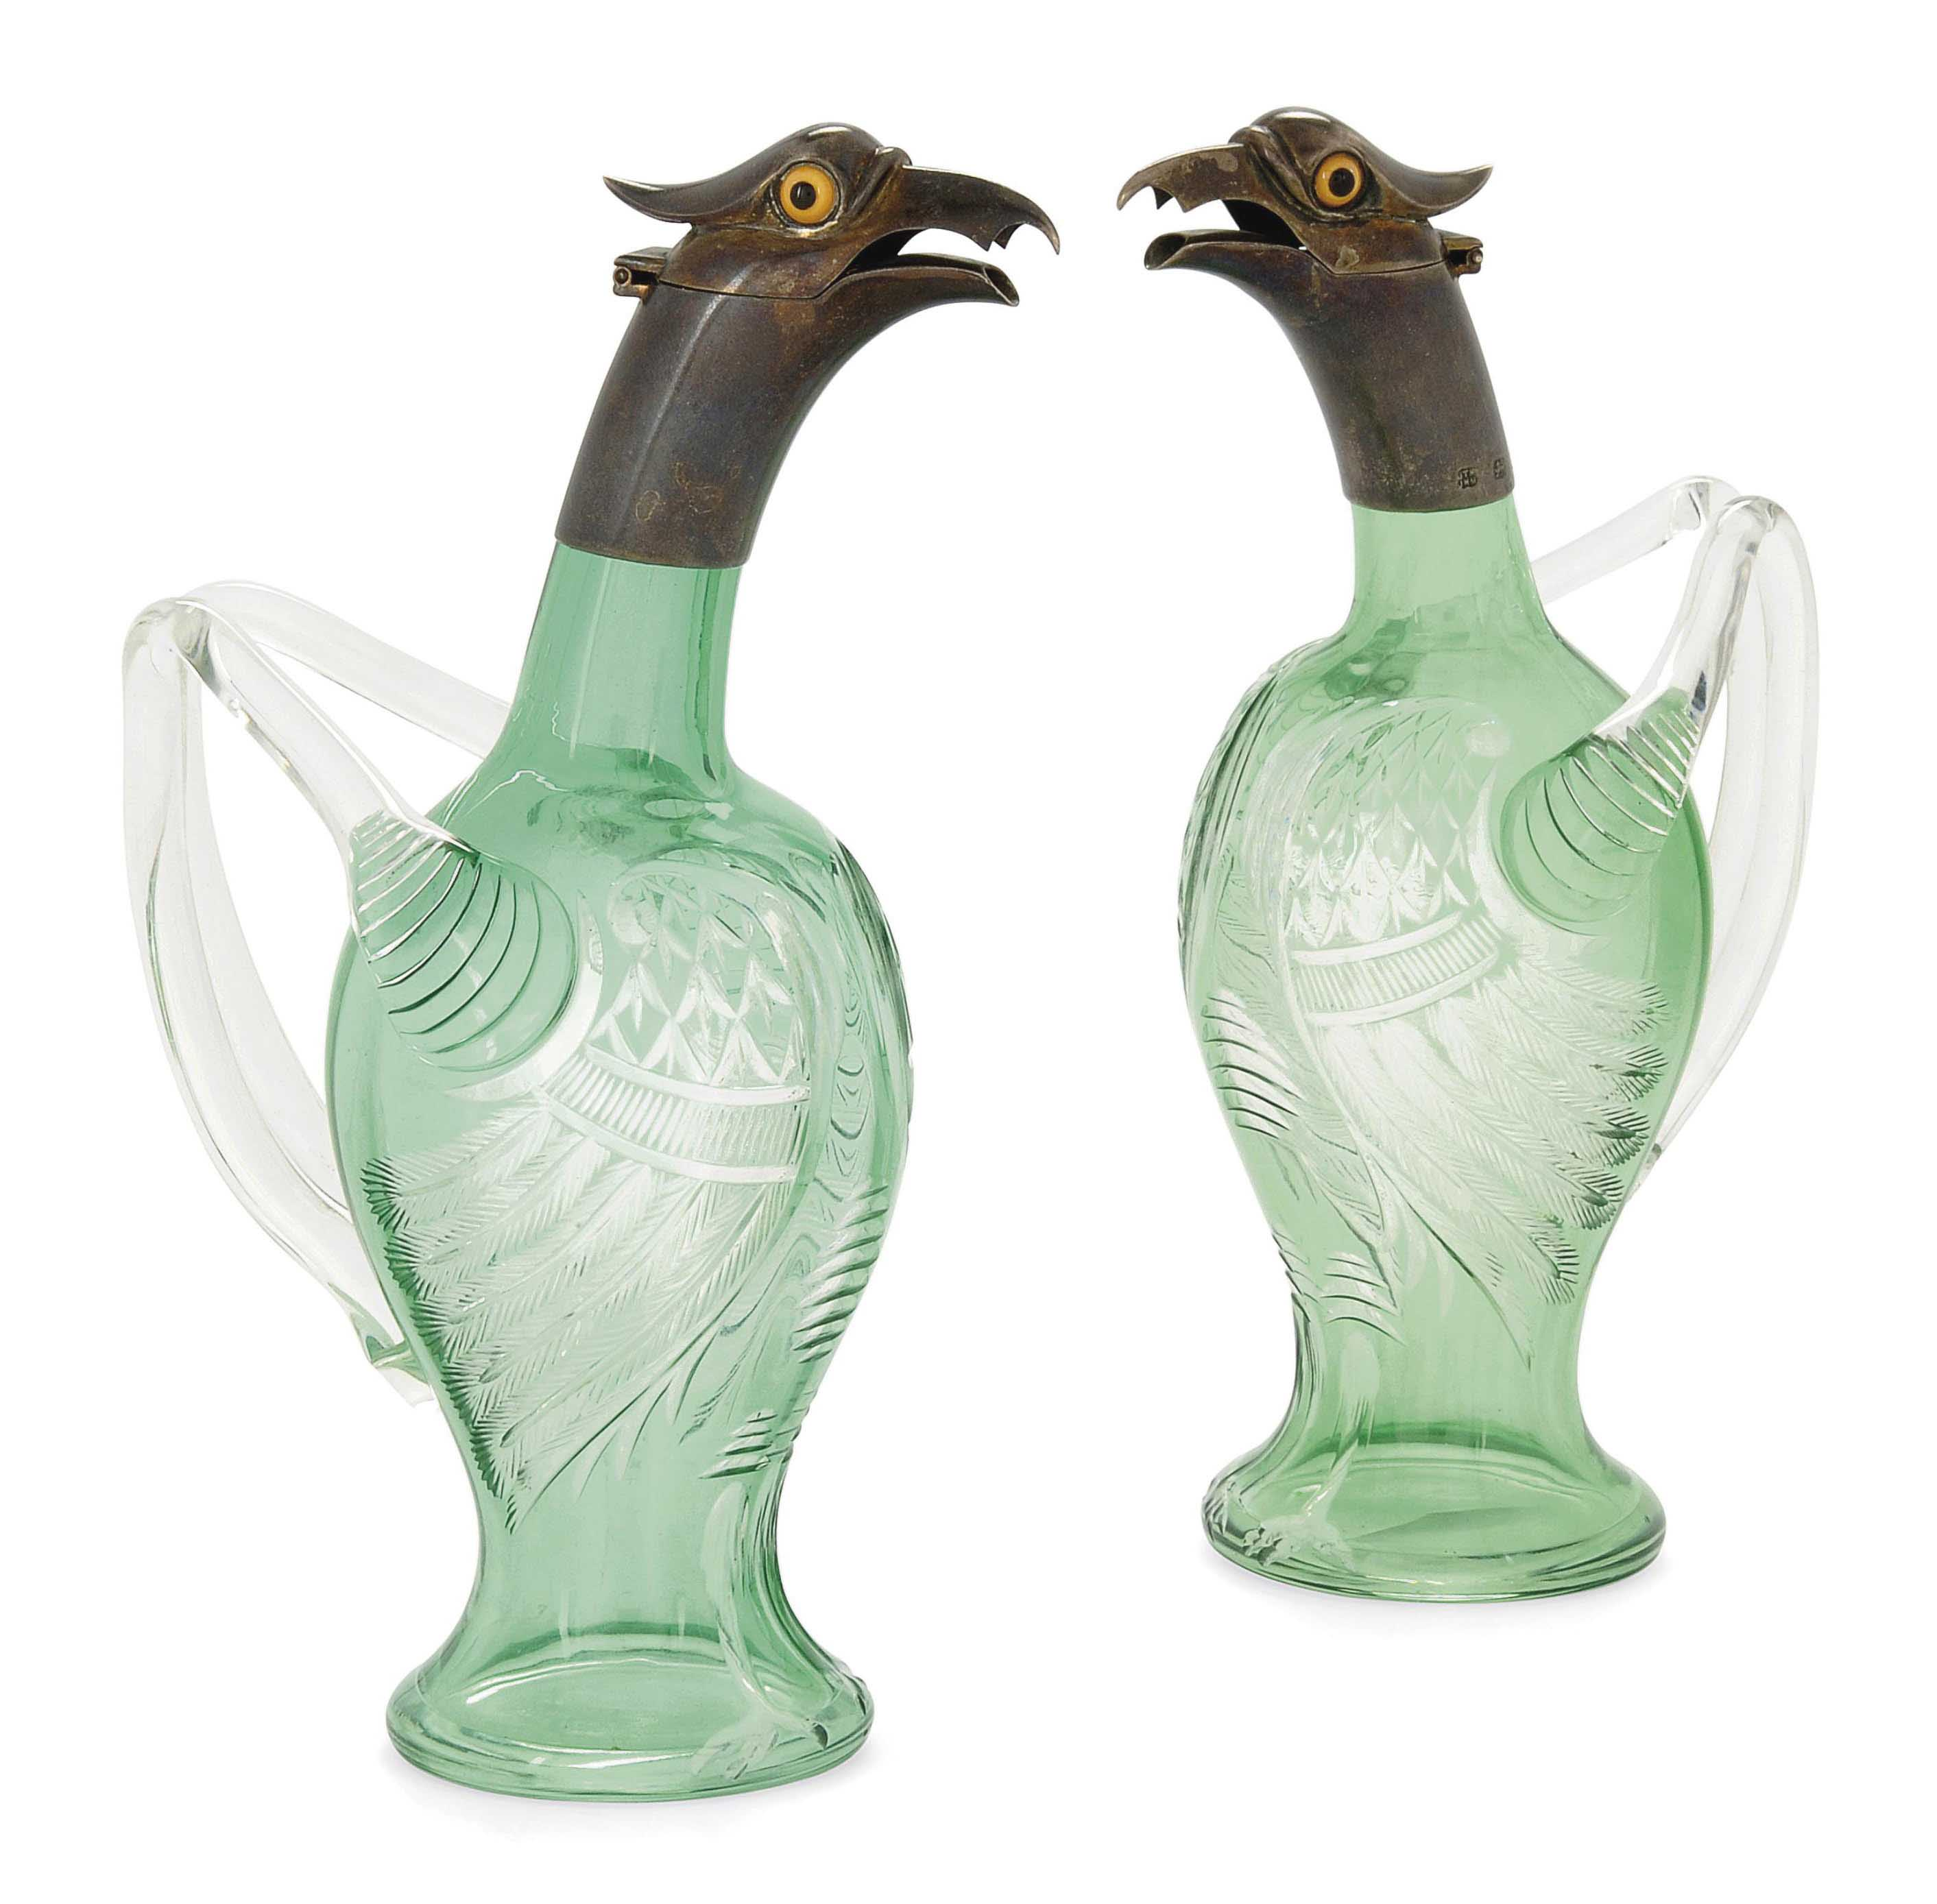 A PAIR OF VICTORIAN NOVELTY SILVER-MOUNTED SPIRIT JUGS